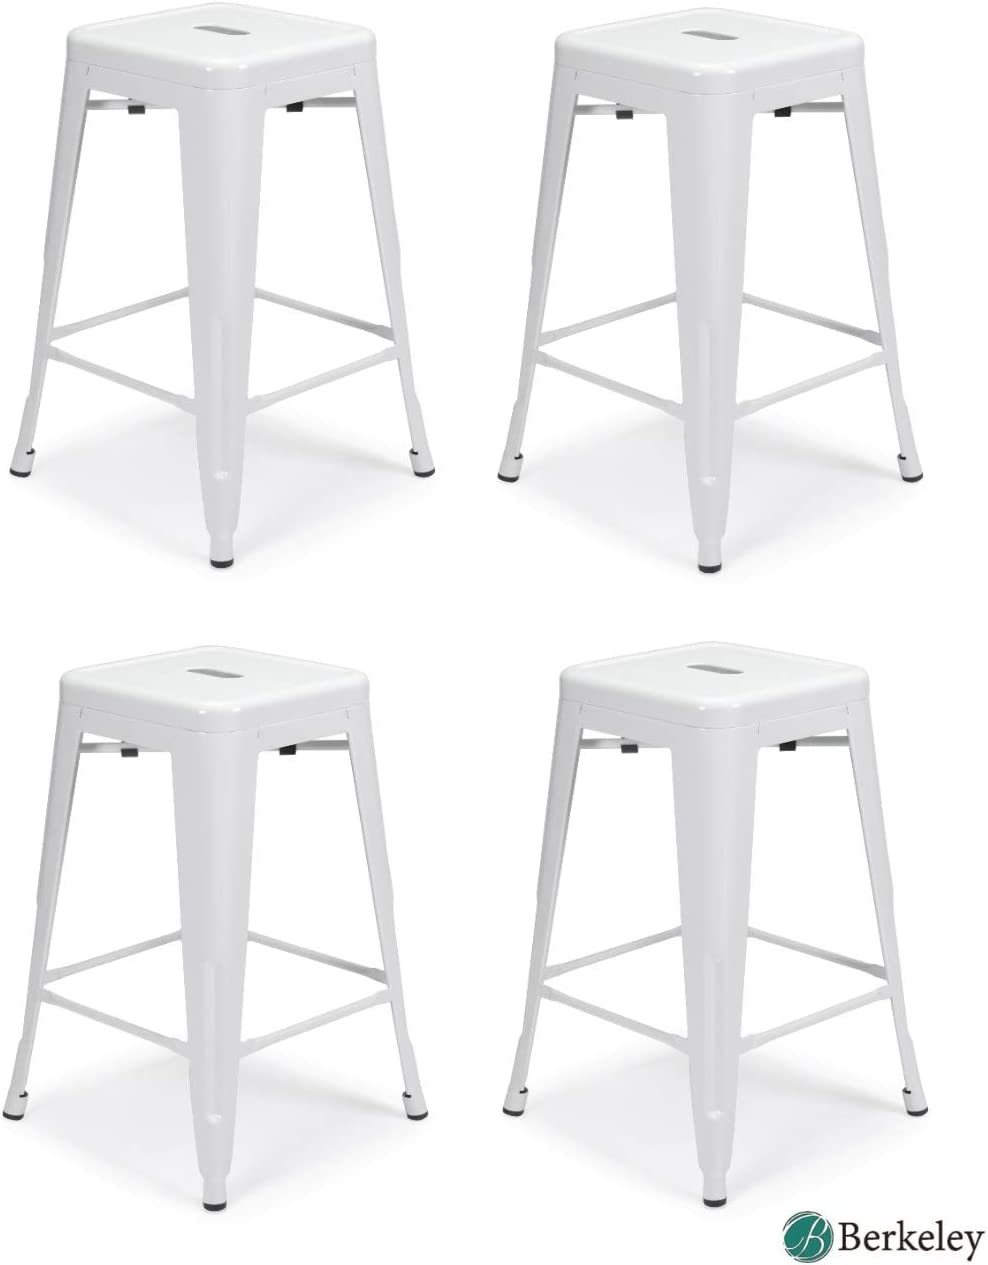 Set of 4 Milani Metal Bar Stools 24 White Stack-able, Indoor Outdoor Use, Kitchen Bar Stools, Patio stools, Industrial, Galvanized Steel Counter Stools